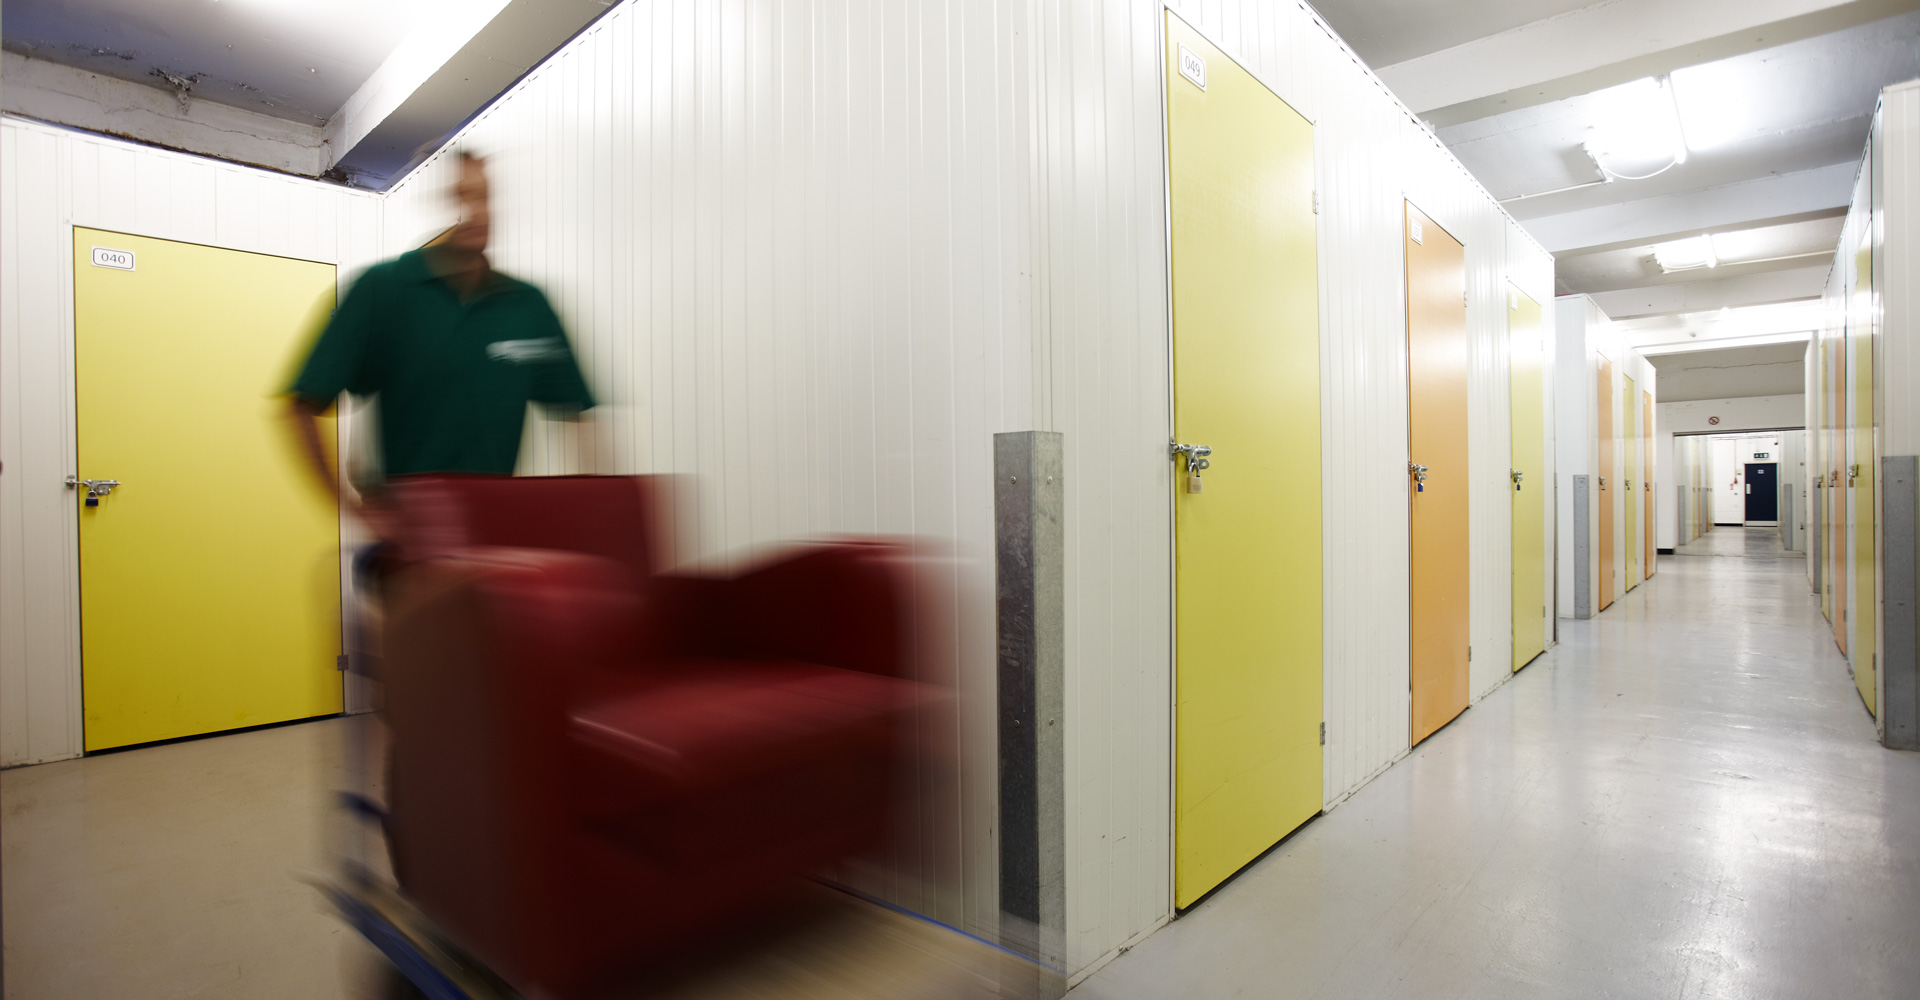 Removal man inside storage unit moving a sofa